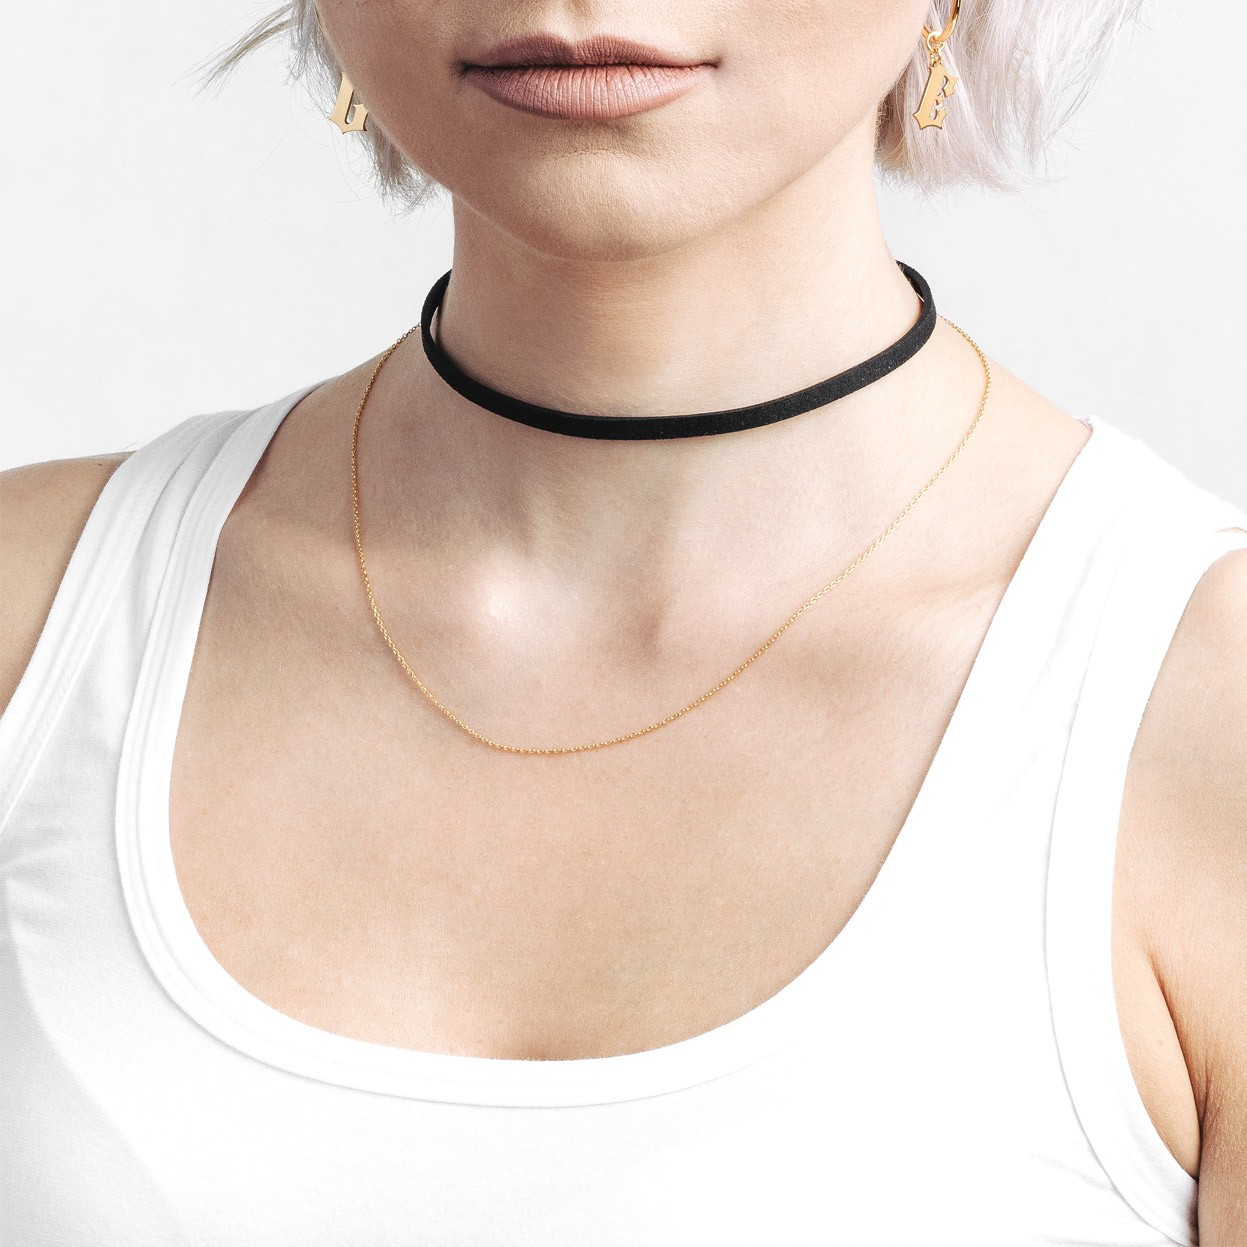 COLLIER FOULARD BASE CHARMS PERLE ARGENT